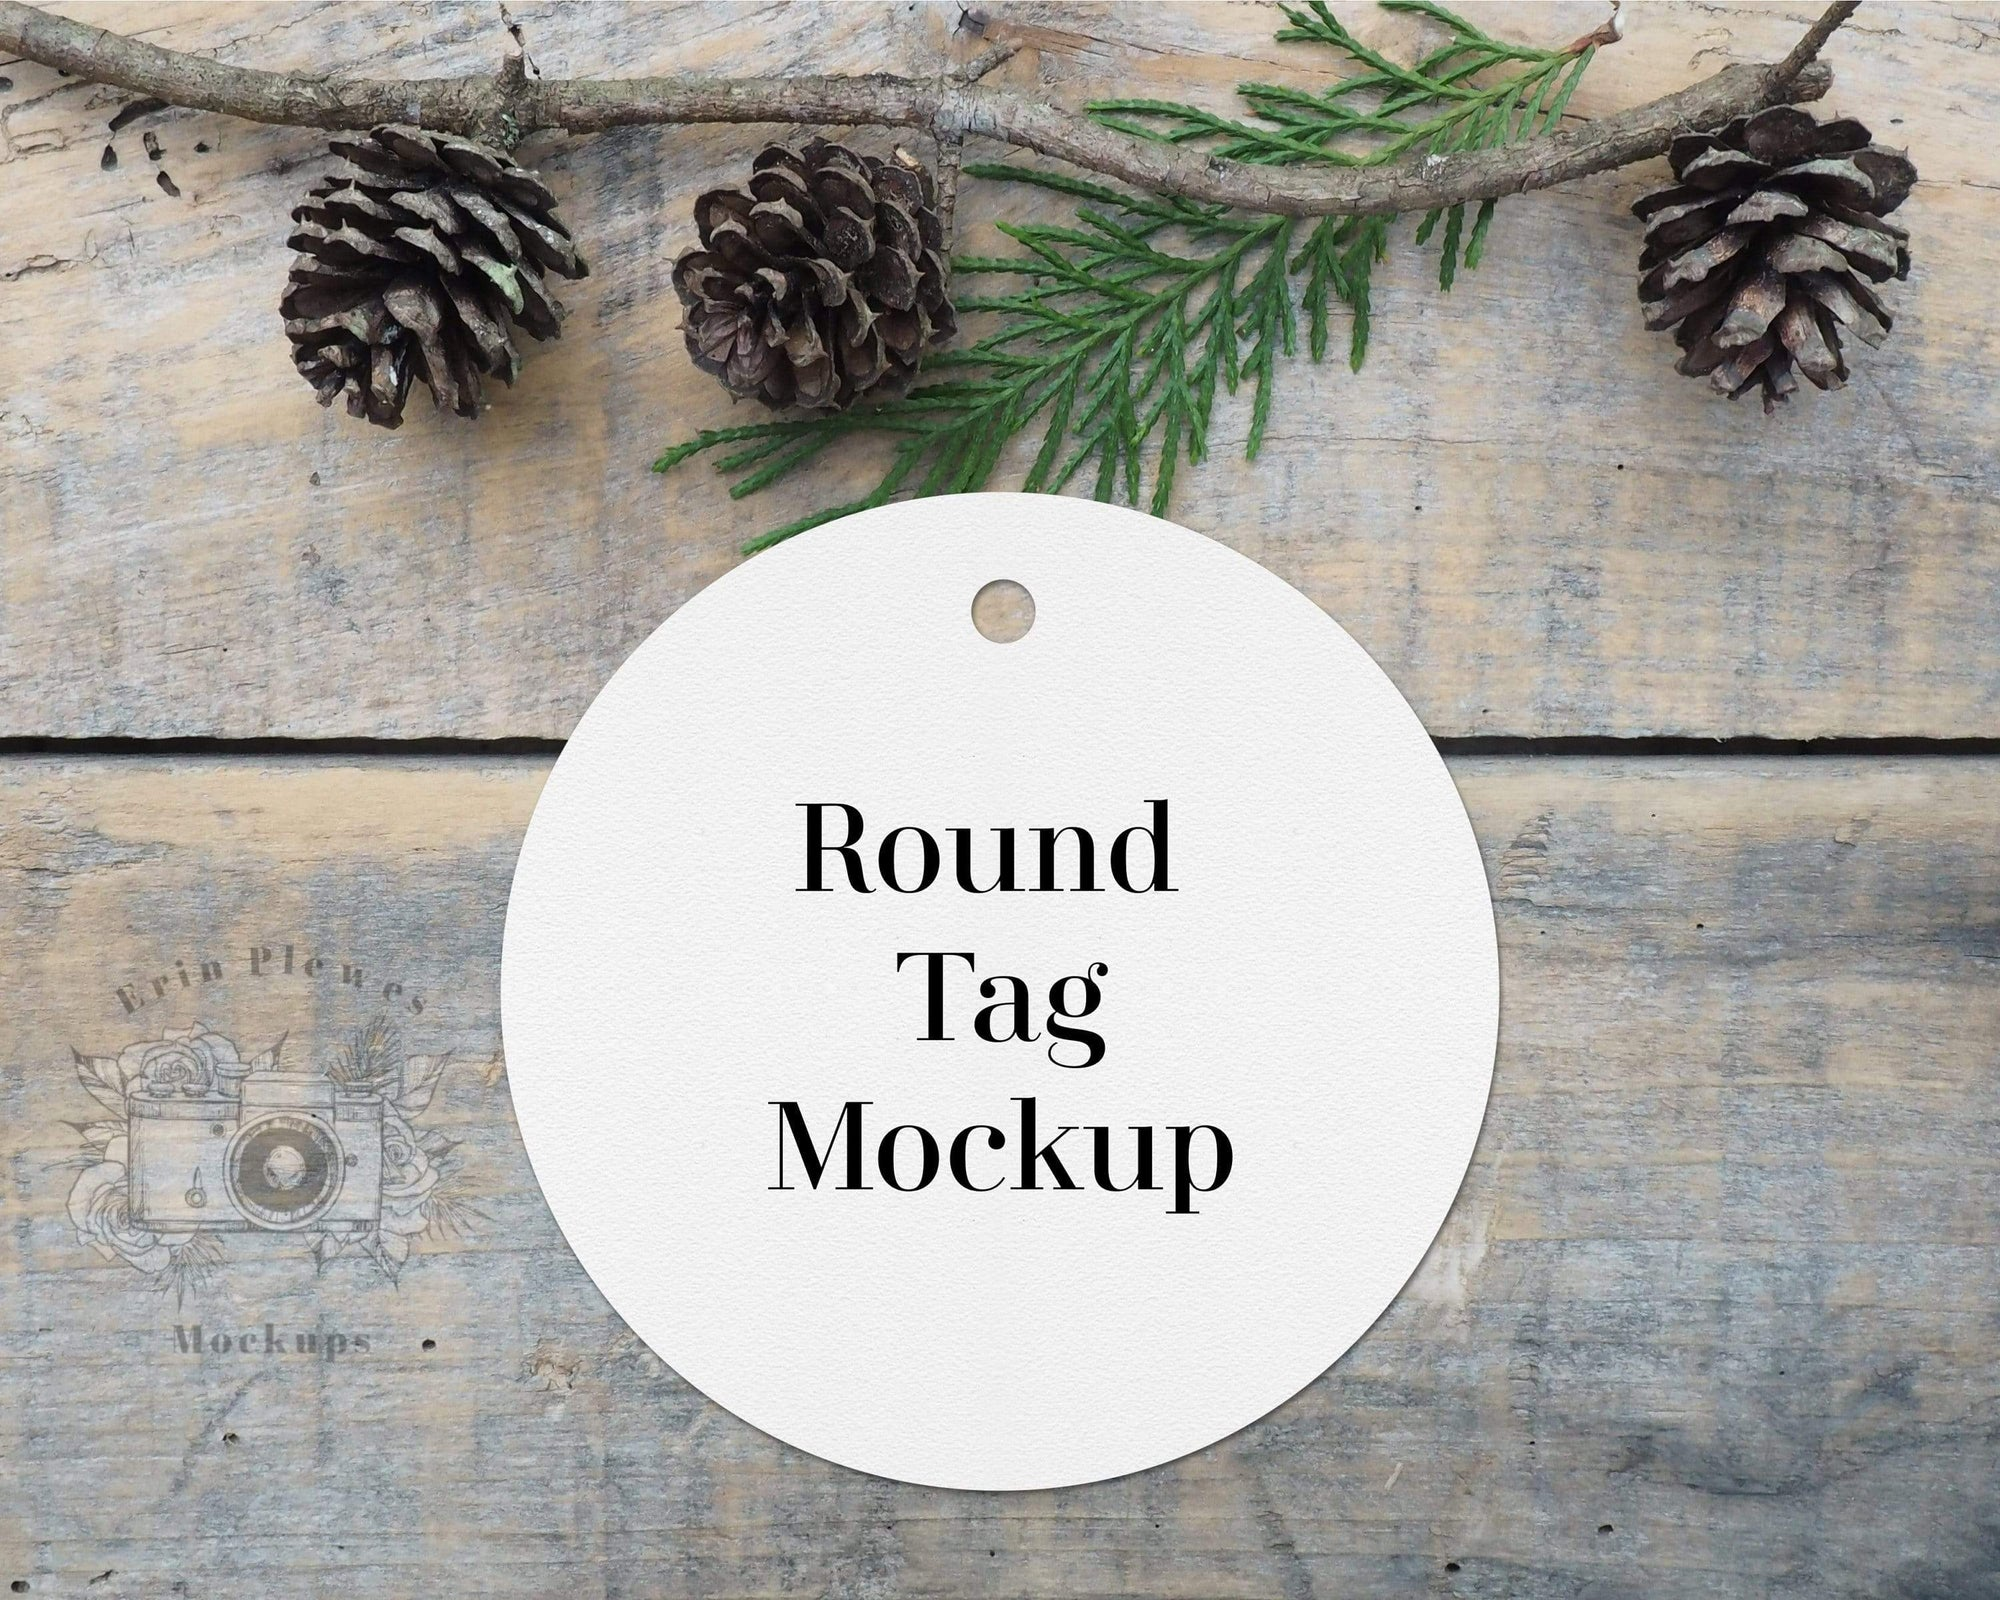 Erin Plewes Mockups Round tag mockup, Christmas gift tag mock up for present labels and stock photography, Jpeg instant Digital Download